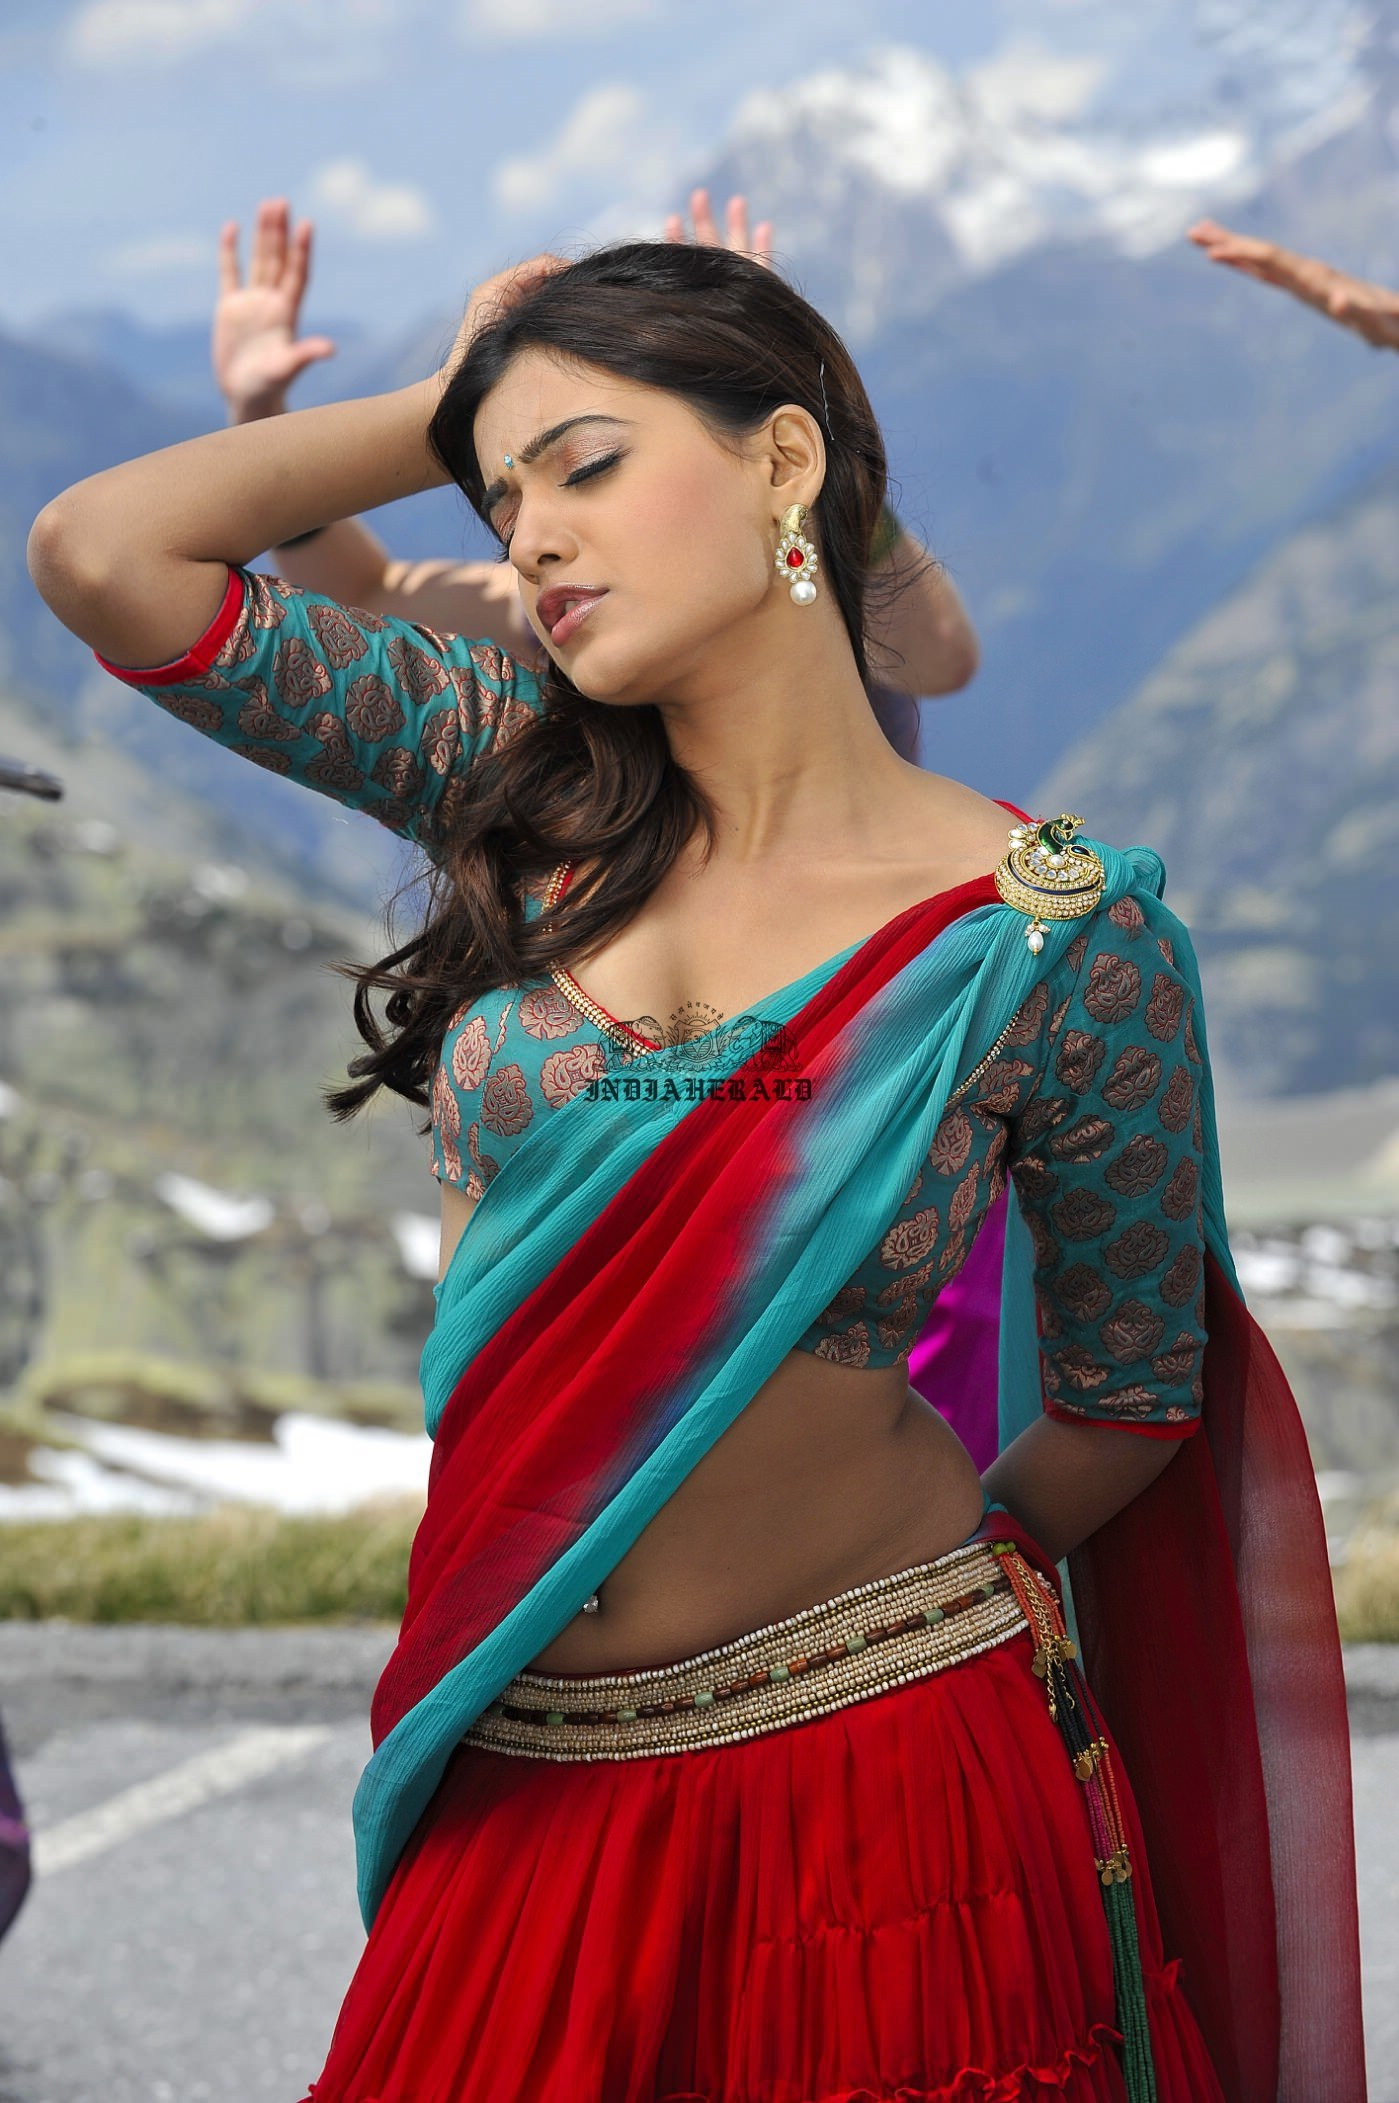 Samantha shows horny expressions on face and exposes her navel and hip curves Set 1